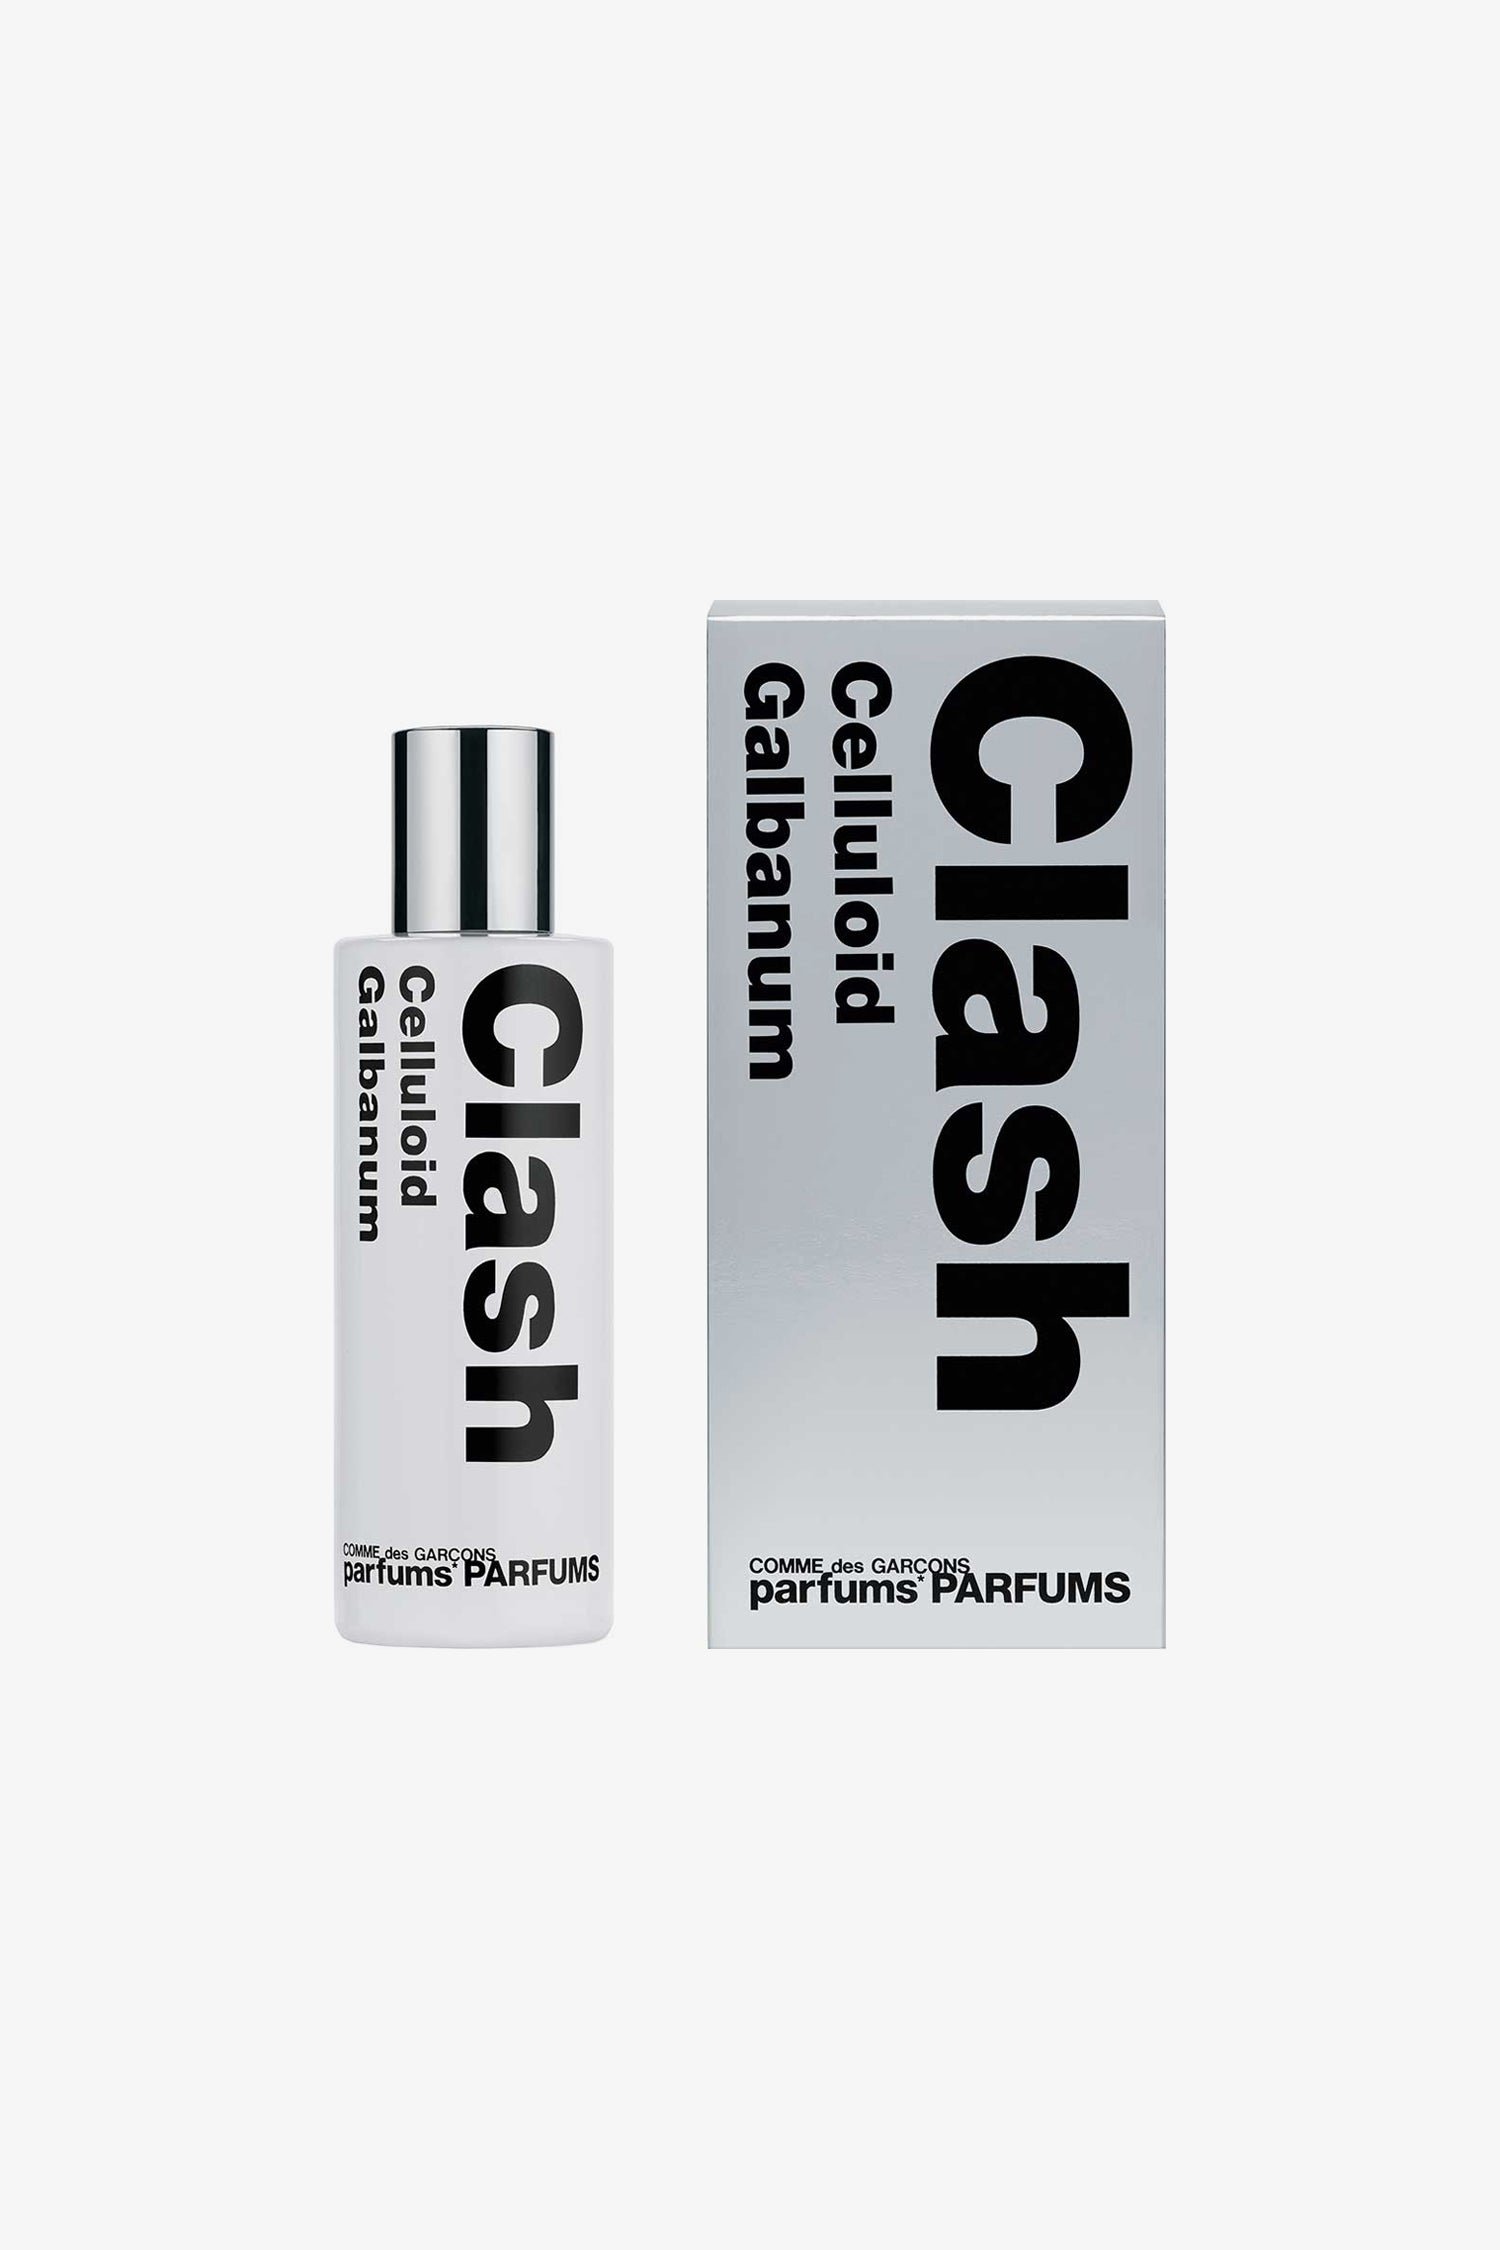 Selectshop FRAME - COMME DES GARCONS PARFUMS Series #10 CLASH Celluloid Galbanum Lifestyle Dubai